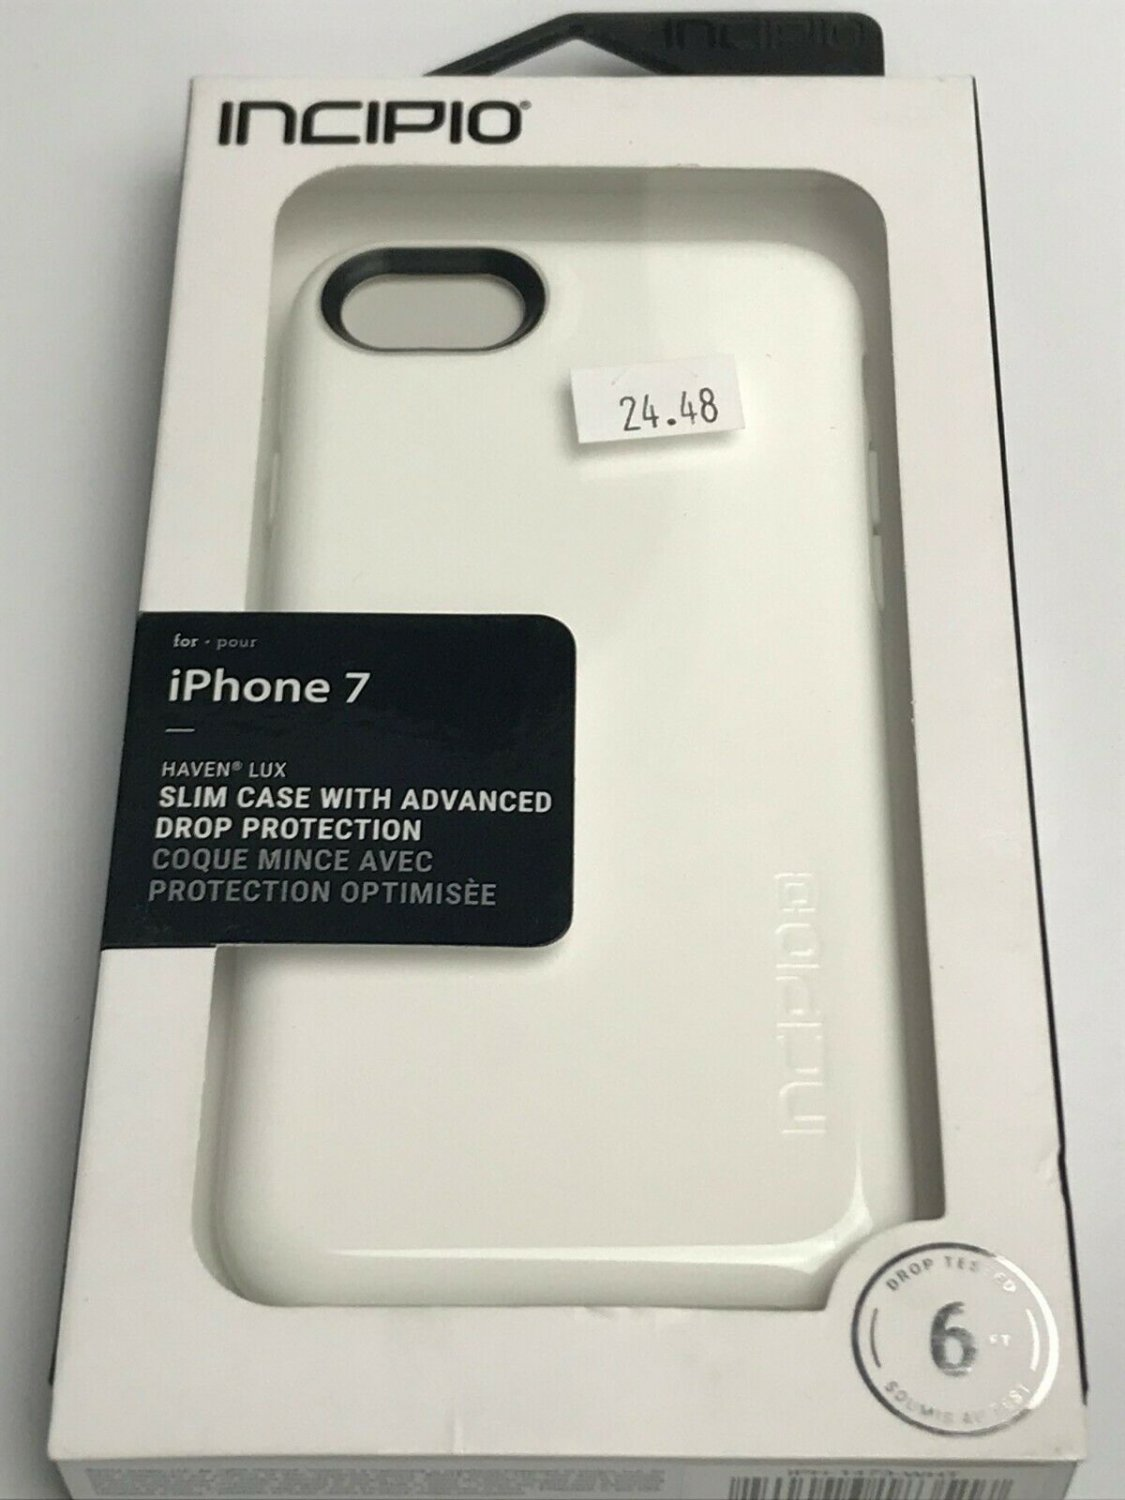 Incipio iphone 8 / 7  case Haven Lux with Padded Interior -White   #IPH1473WHT